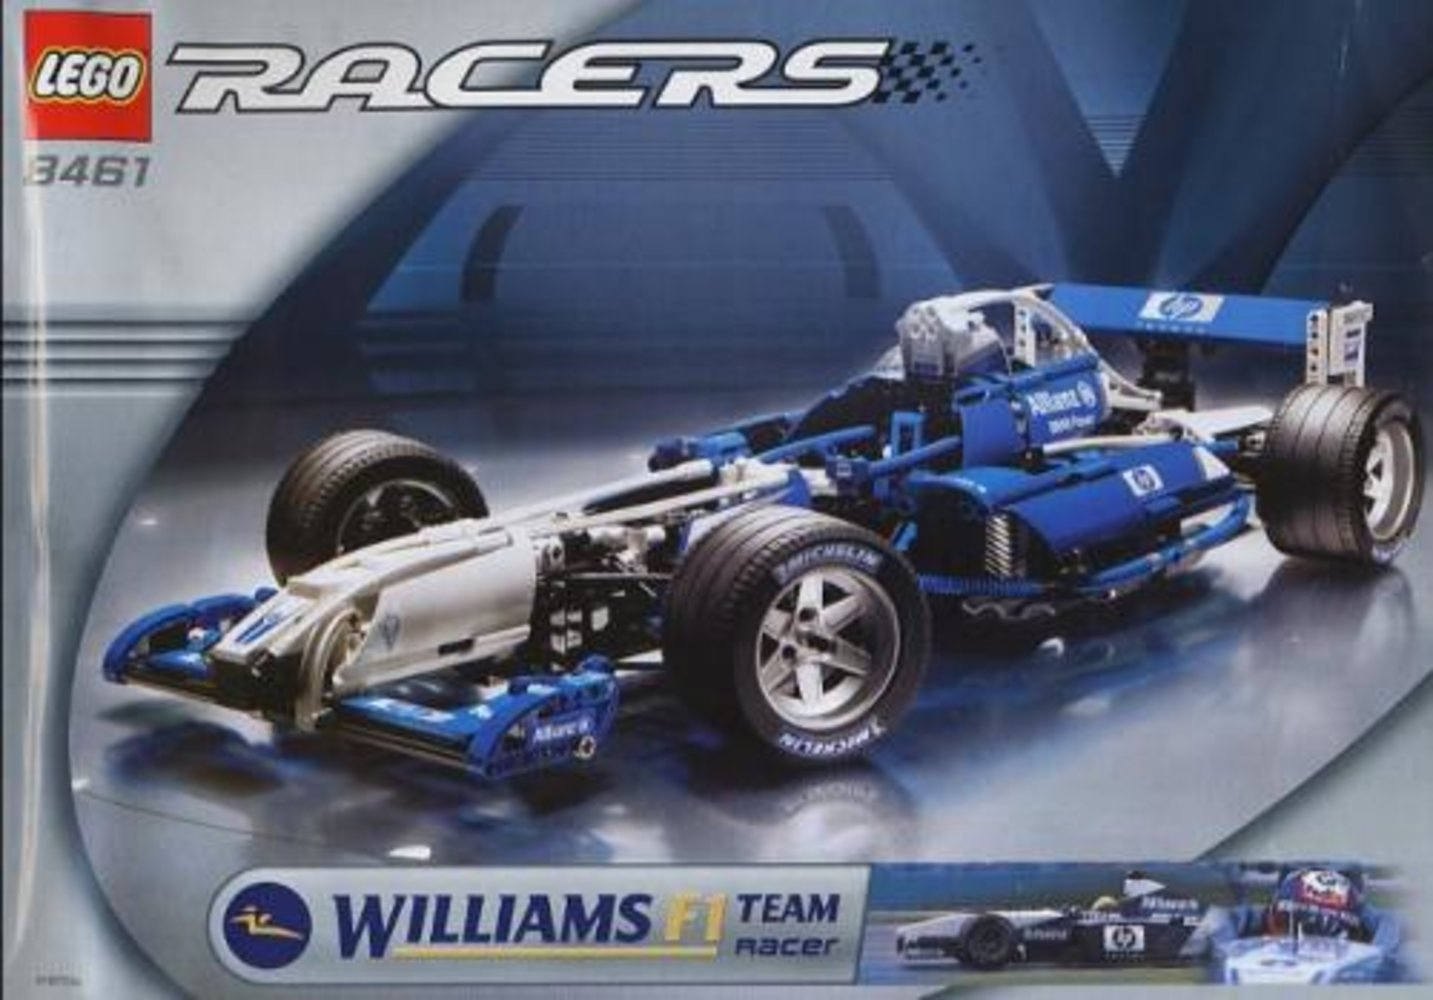 Williams F1 Racer